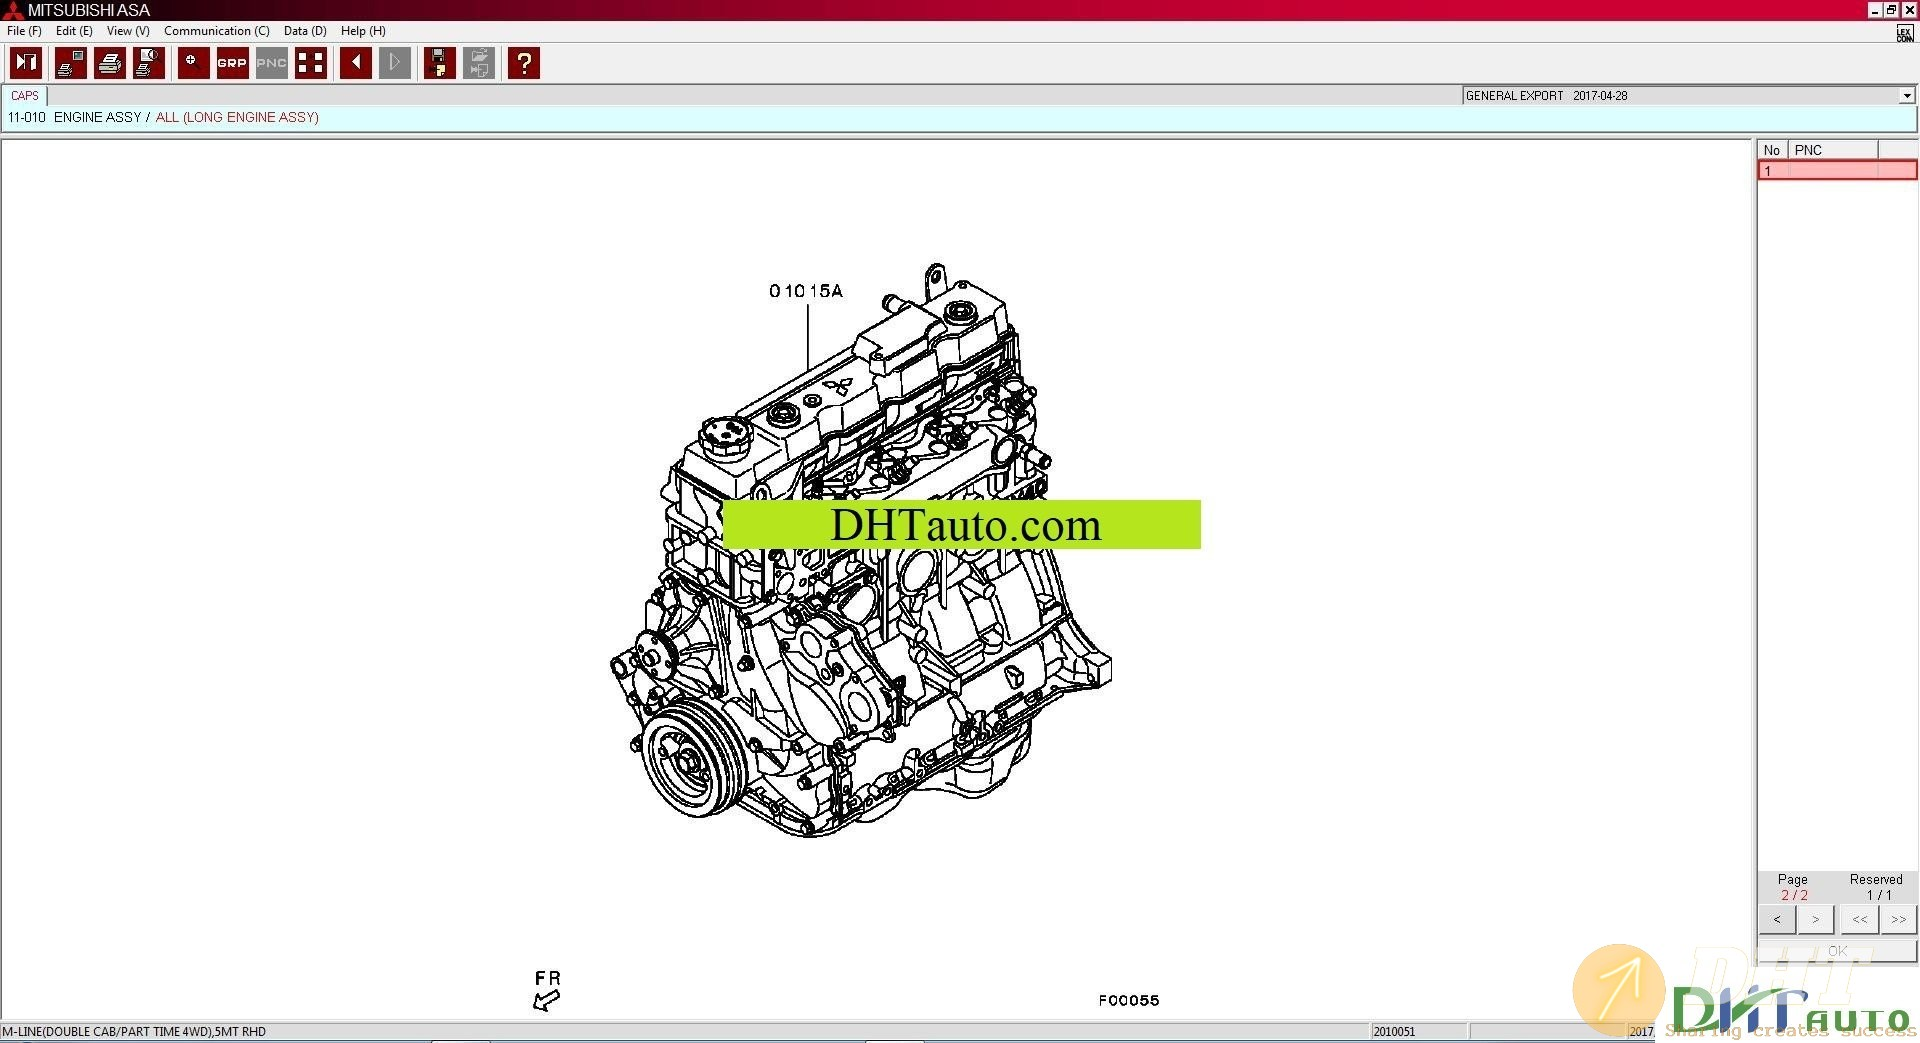 Mitsubishi-ASA-Europe-G.Export-USA-Japan-Epc-Instruction-Full-12-2017-6.jpg